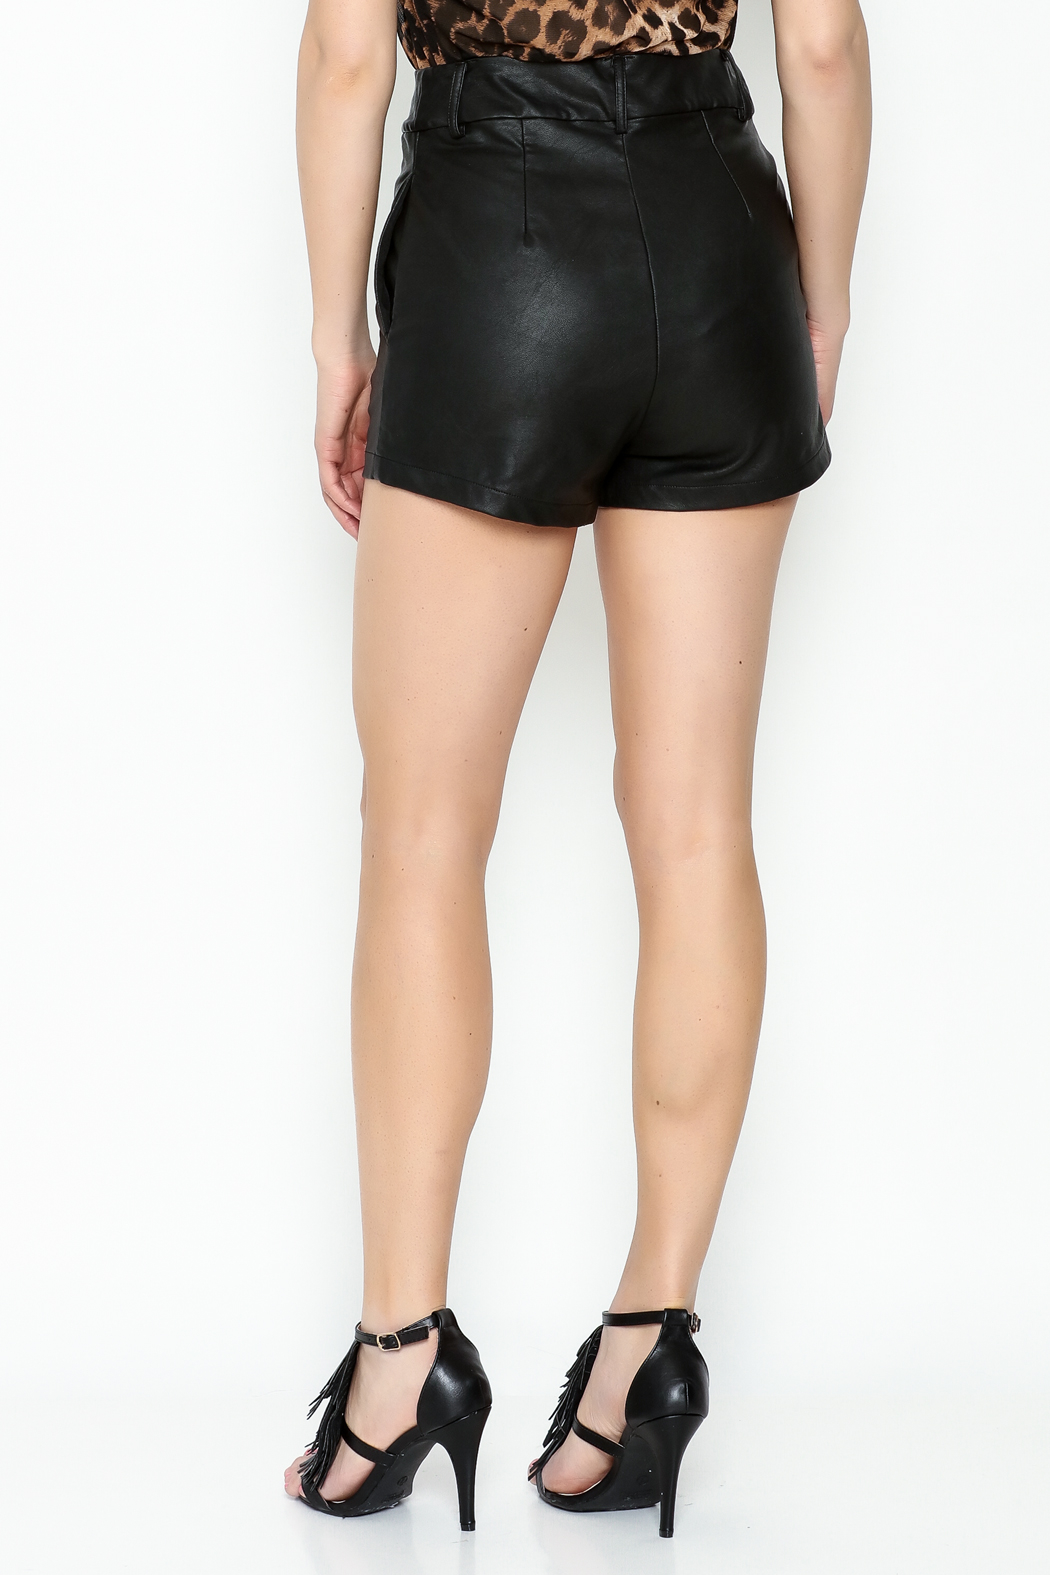 Olivaceous Black Leather Shorts - Back Cropped Image